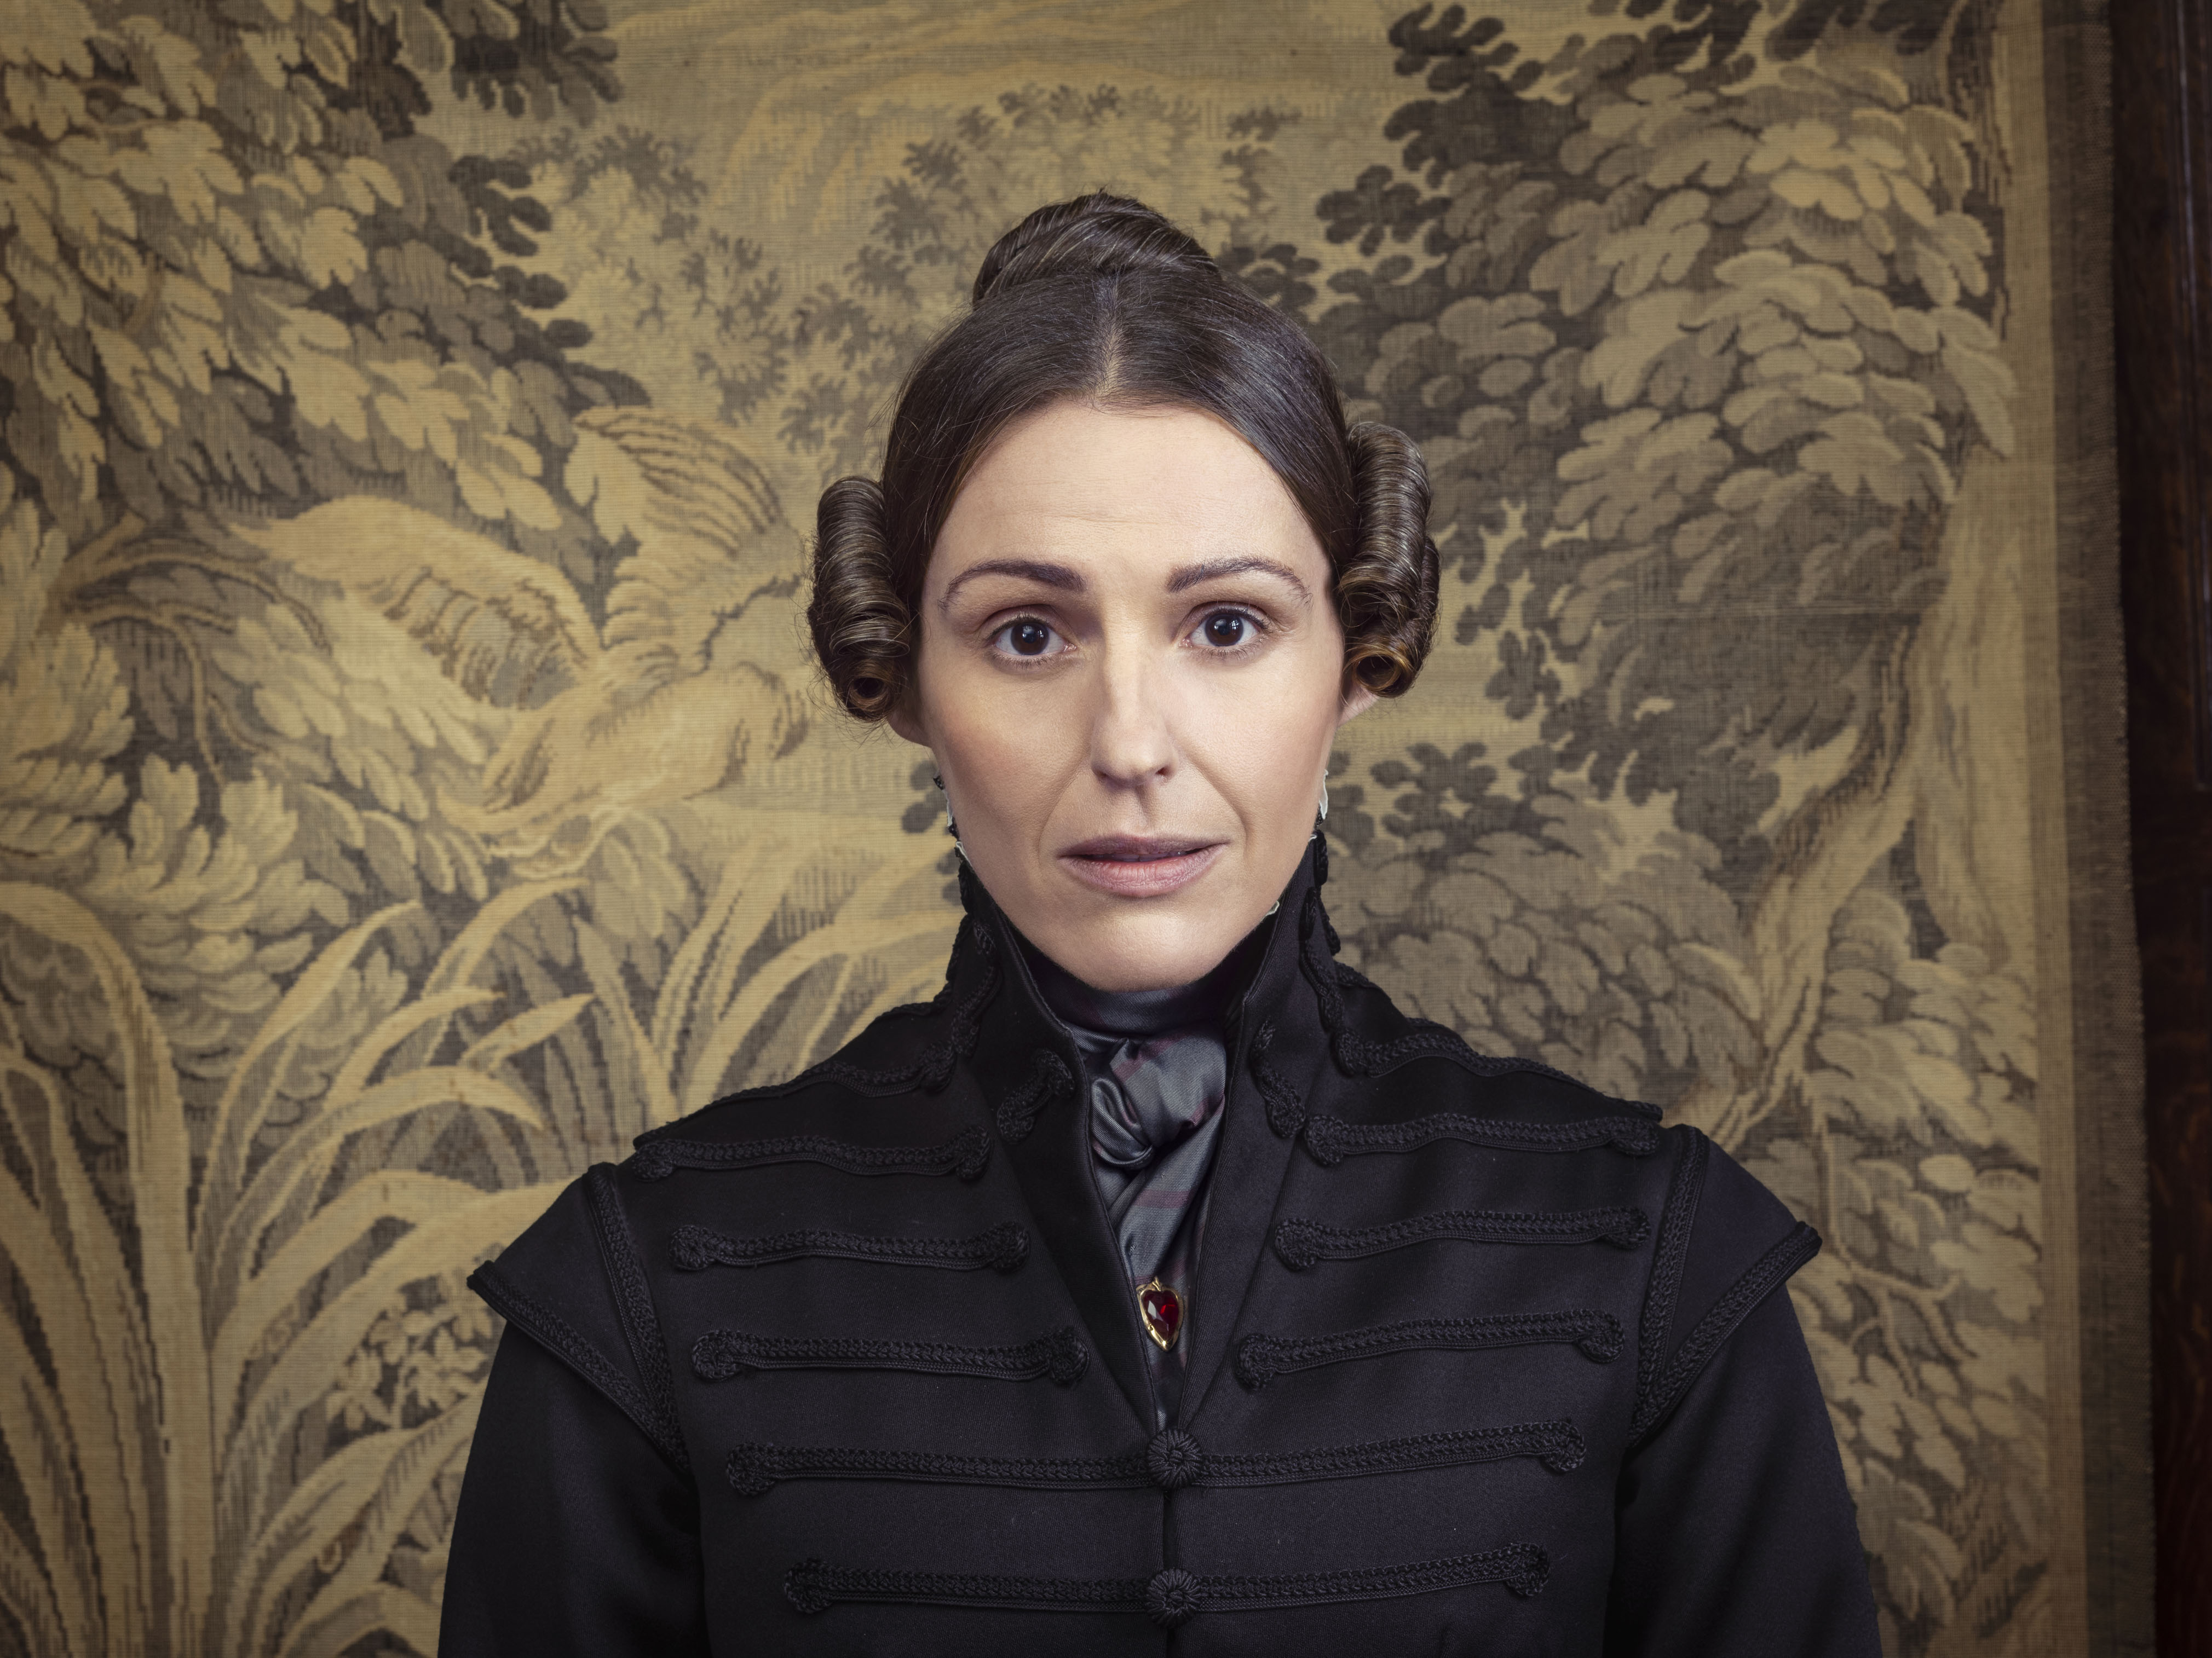 Gentleman Jack viewers praise 'captivating and incredible' Suranne Jones as Anne Lister in BBC drama